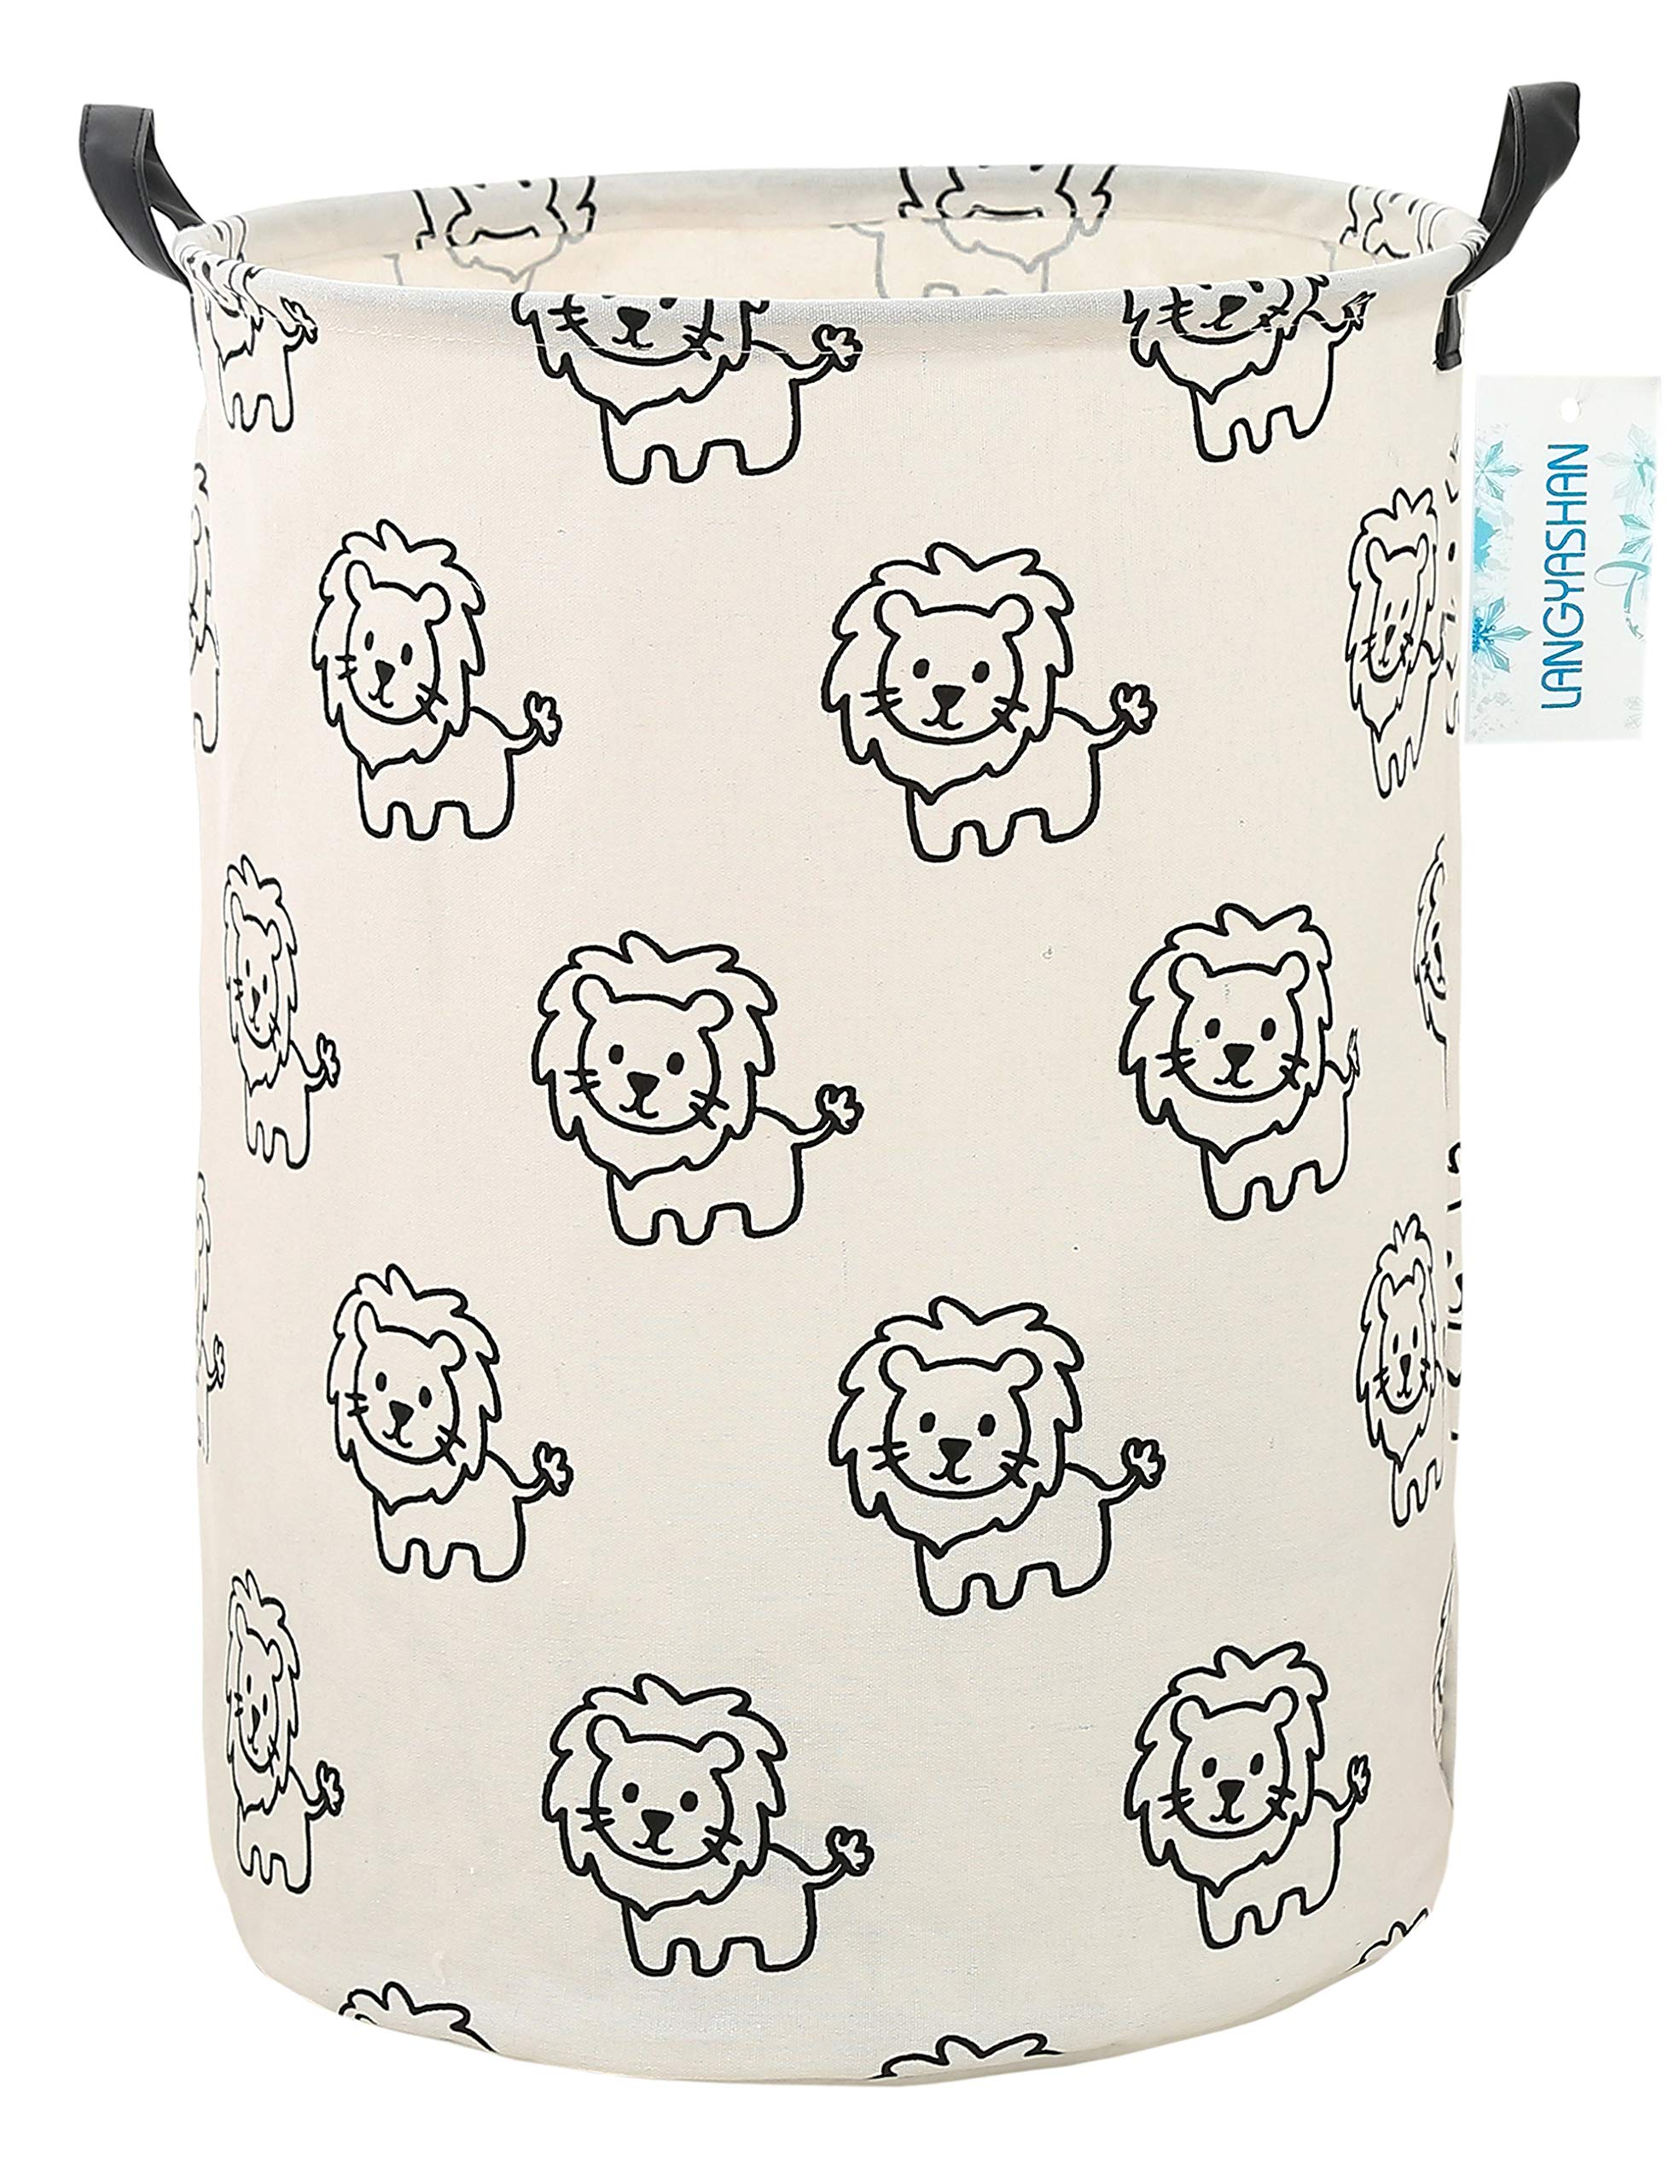 LANGYASHAN Storage Bin,Canvas Fabric Collapsible Organizer Basket for Laundry Hamper,Toy Bins,Gift Baskets, Bedroom, Clothes,Baby Nursery(Lion)